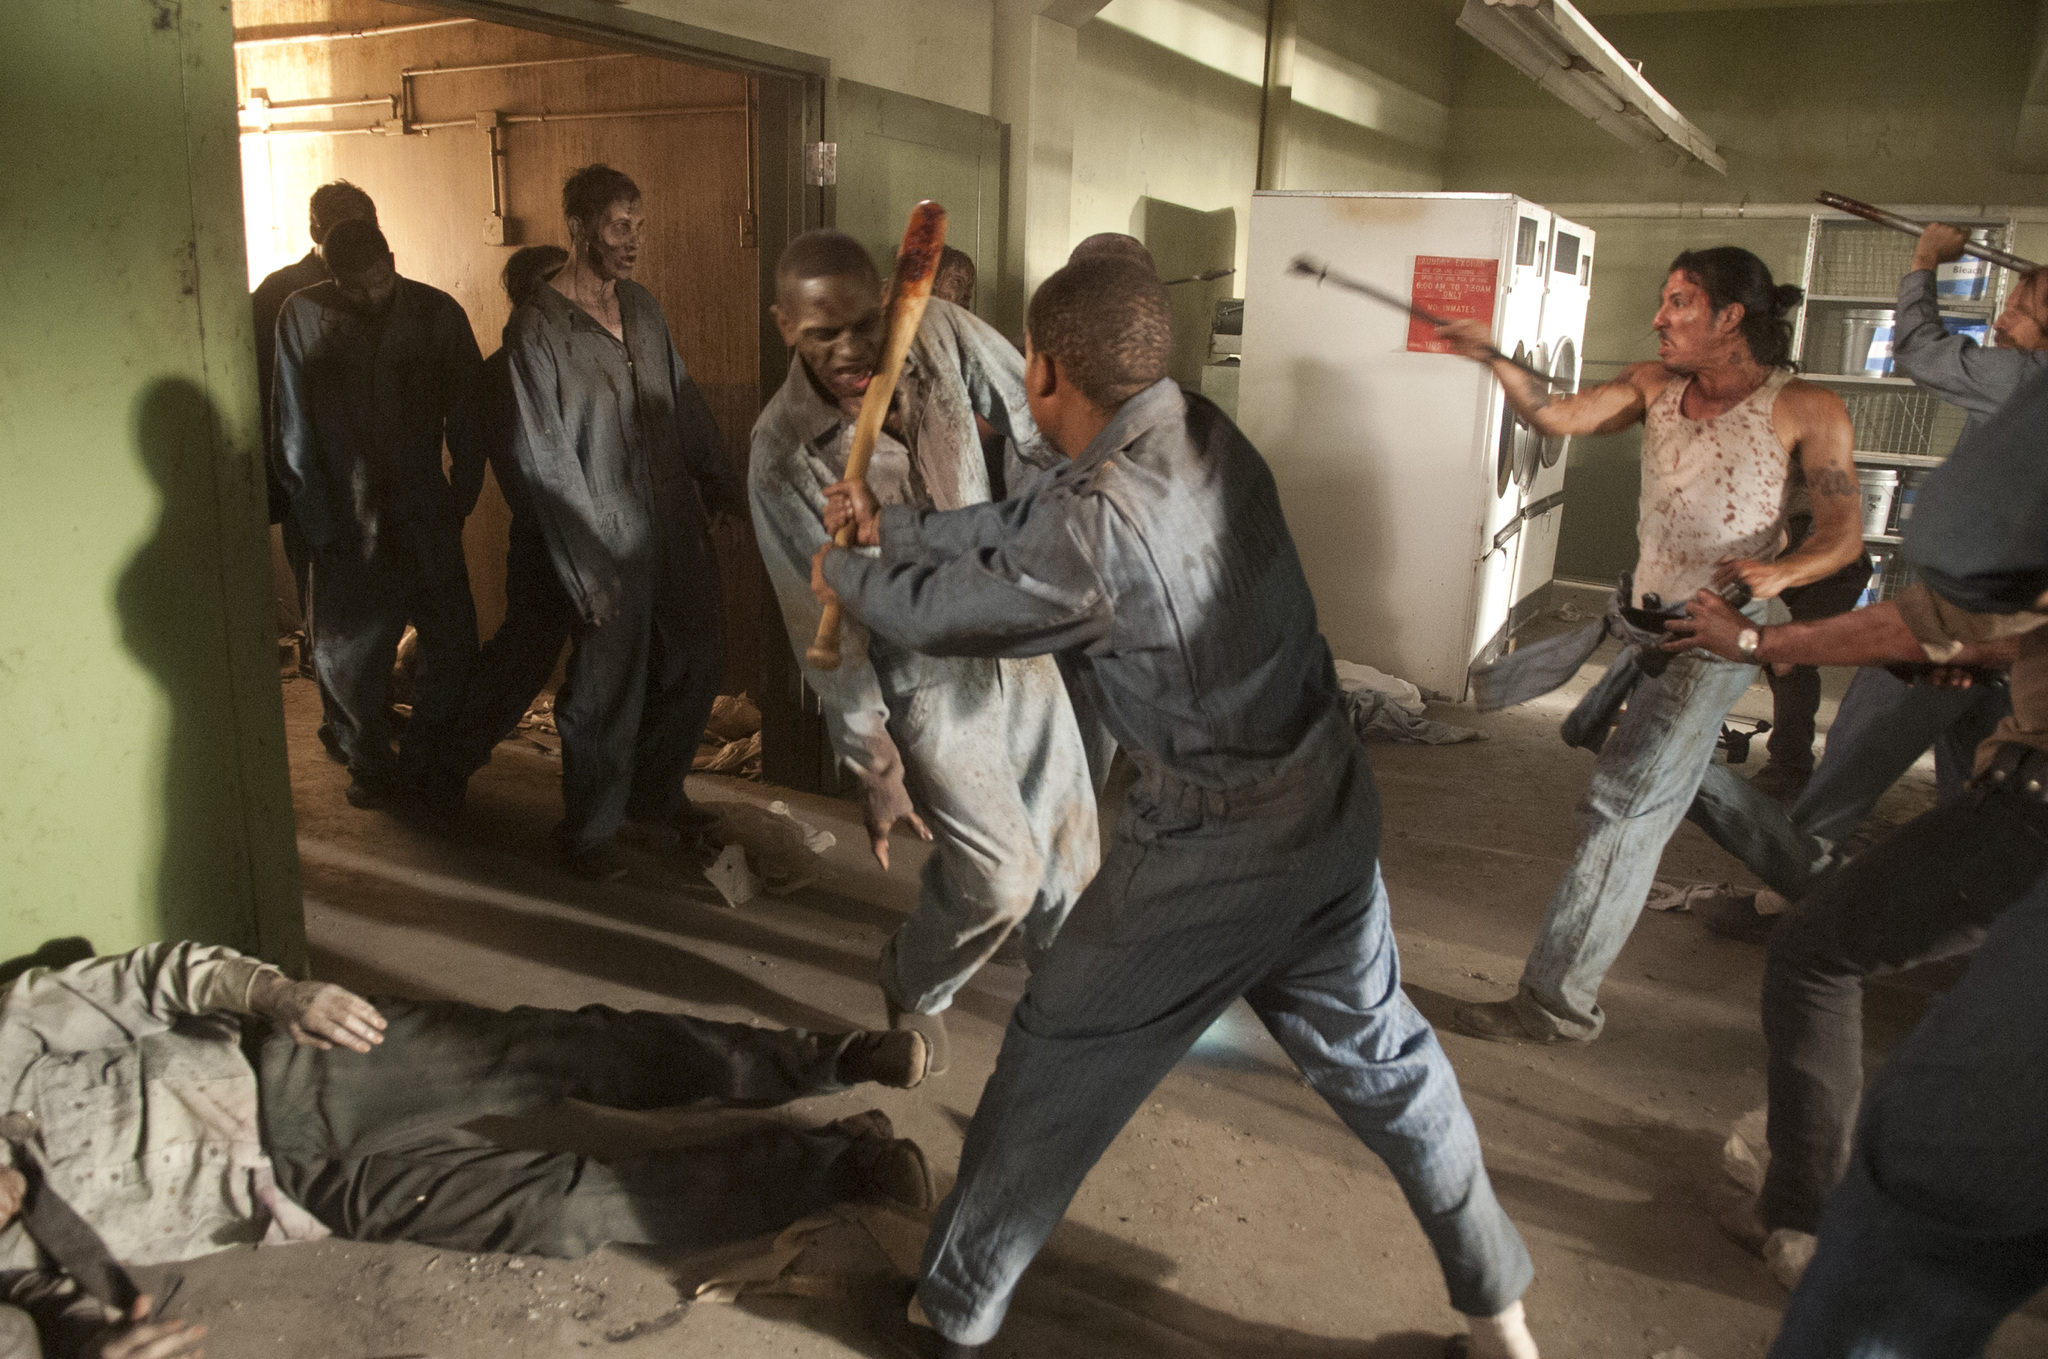 Por dentro de The Walking Dead: O elenco e os produtores comentam o episódio 3x02 -